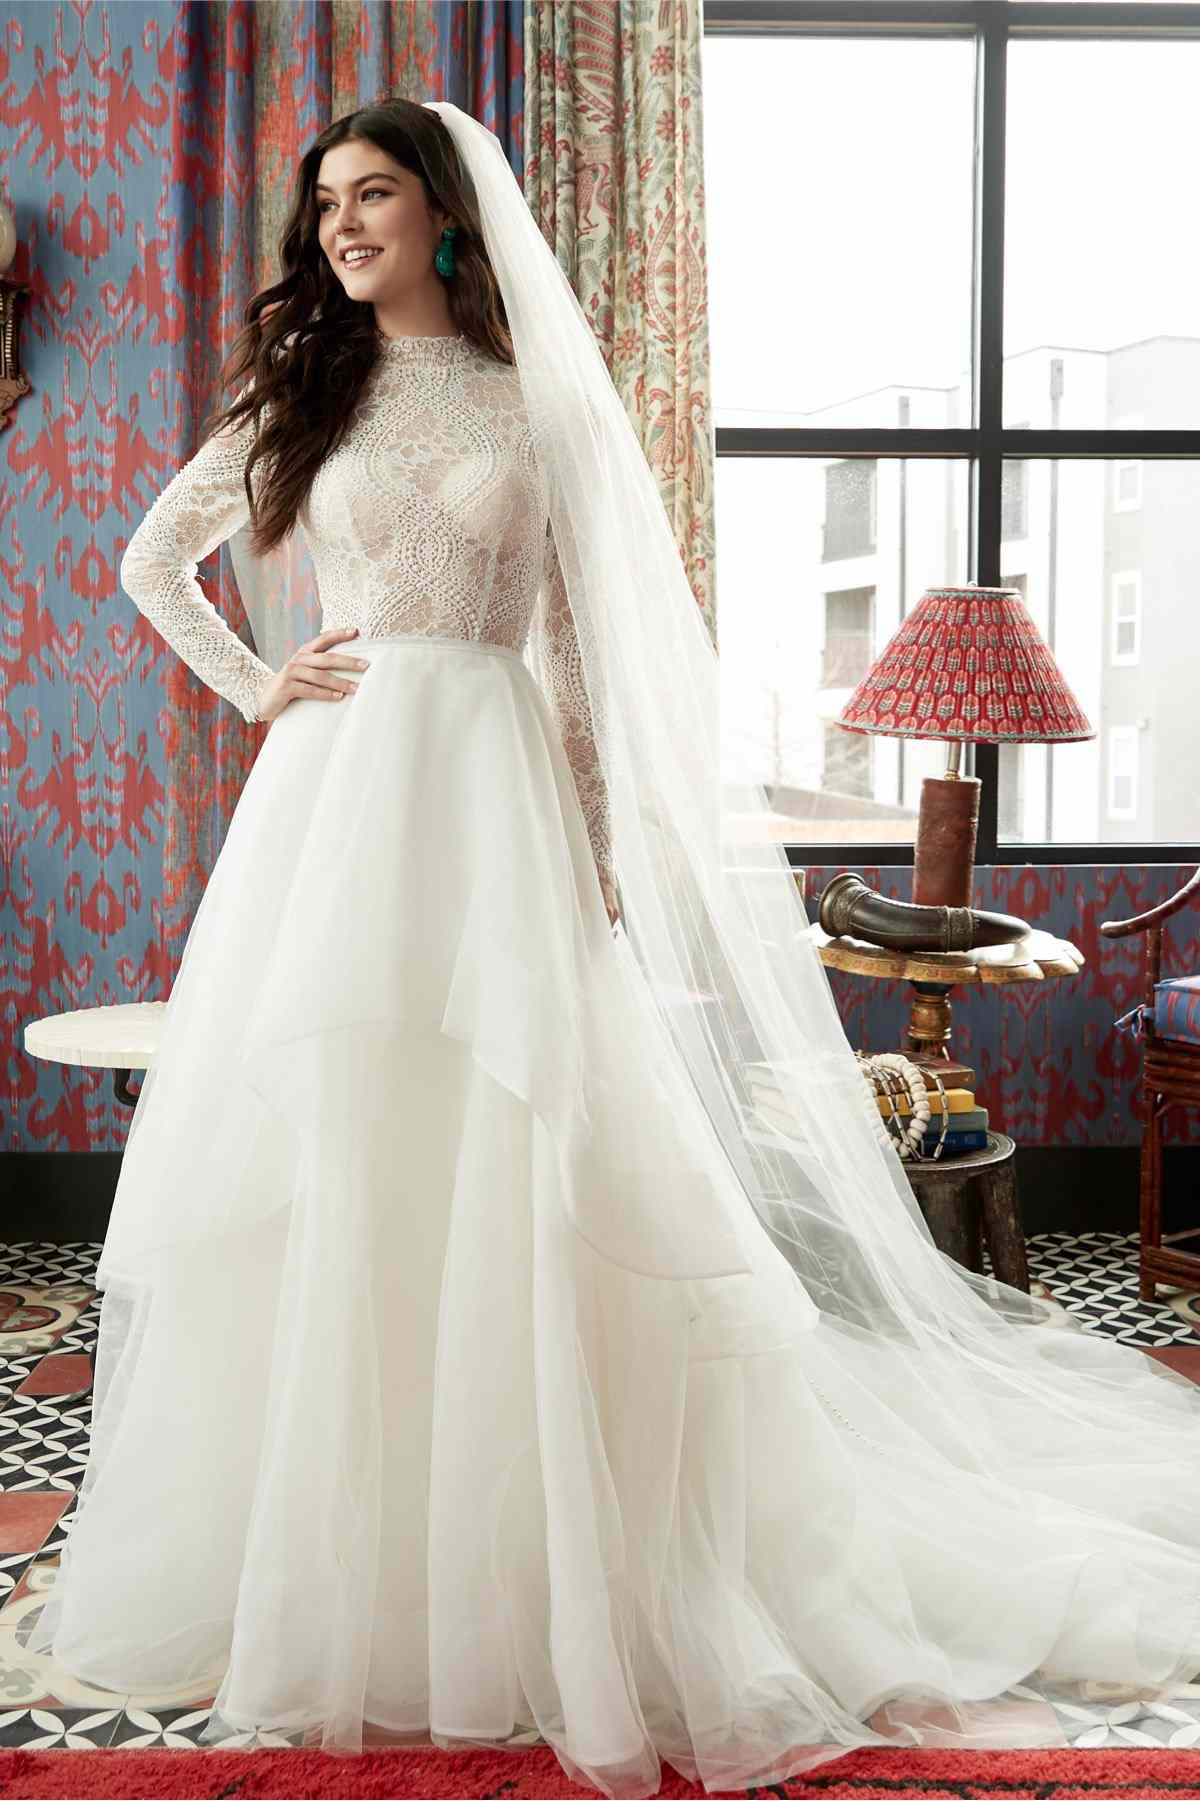 Model in ballgown with long-sleeved mock-neck lace bodice and tiered skirt